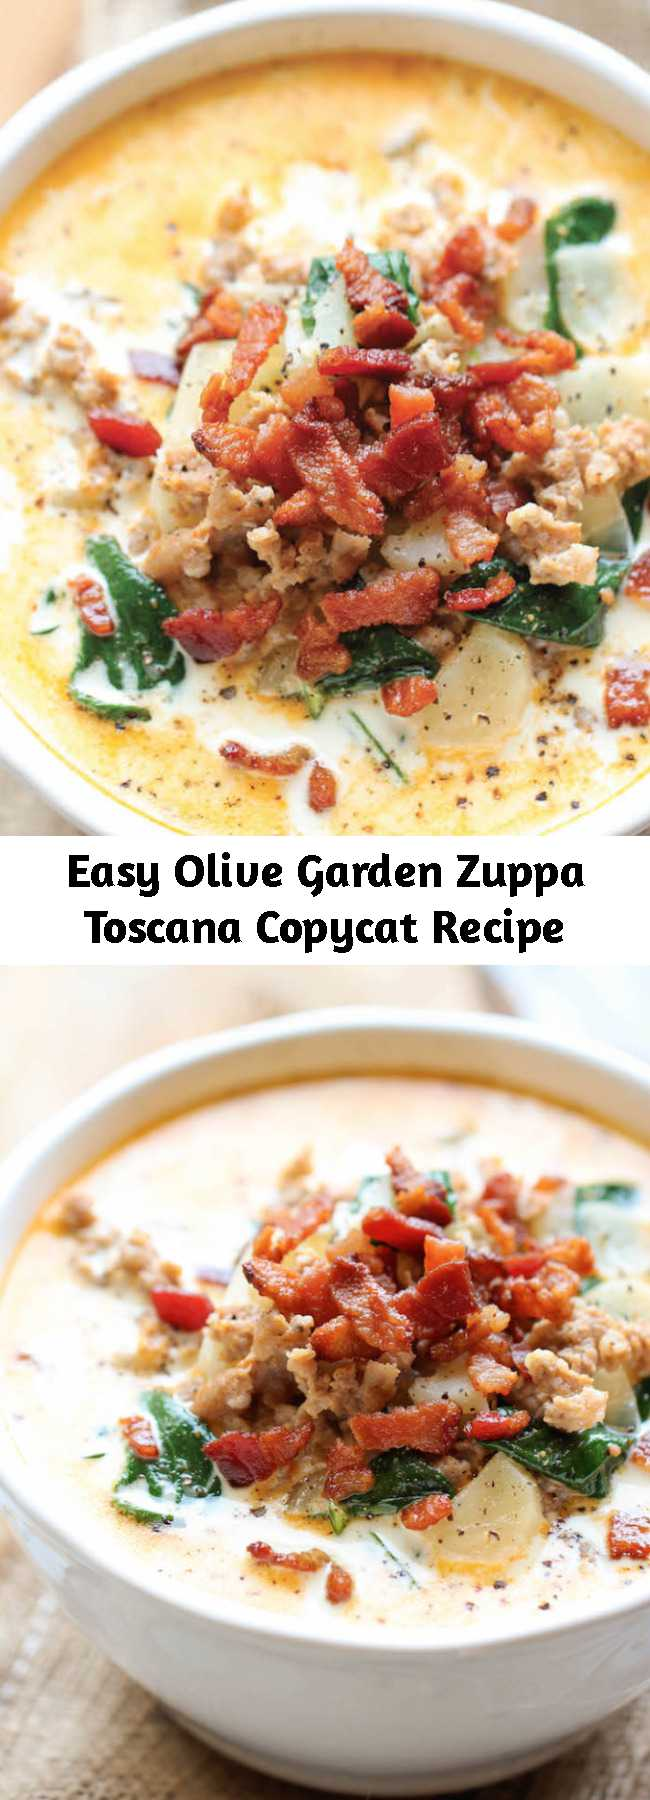 Easy Olive Garden Zuppa Toscana Copycat Recipe - This copycat recipe is budget-friendly, incredibly easy to make, and tastes a million times better than the original!